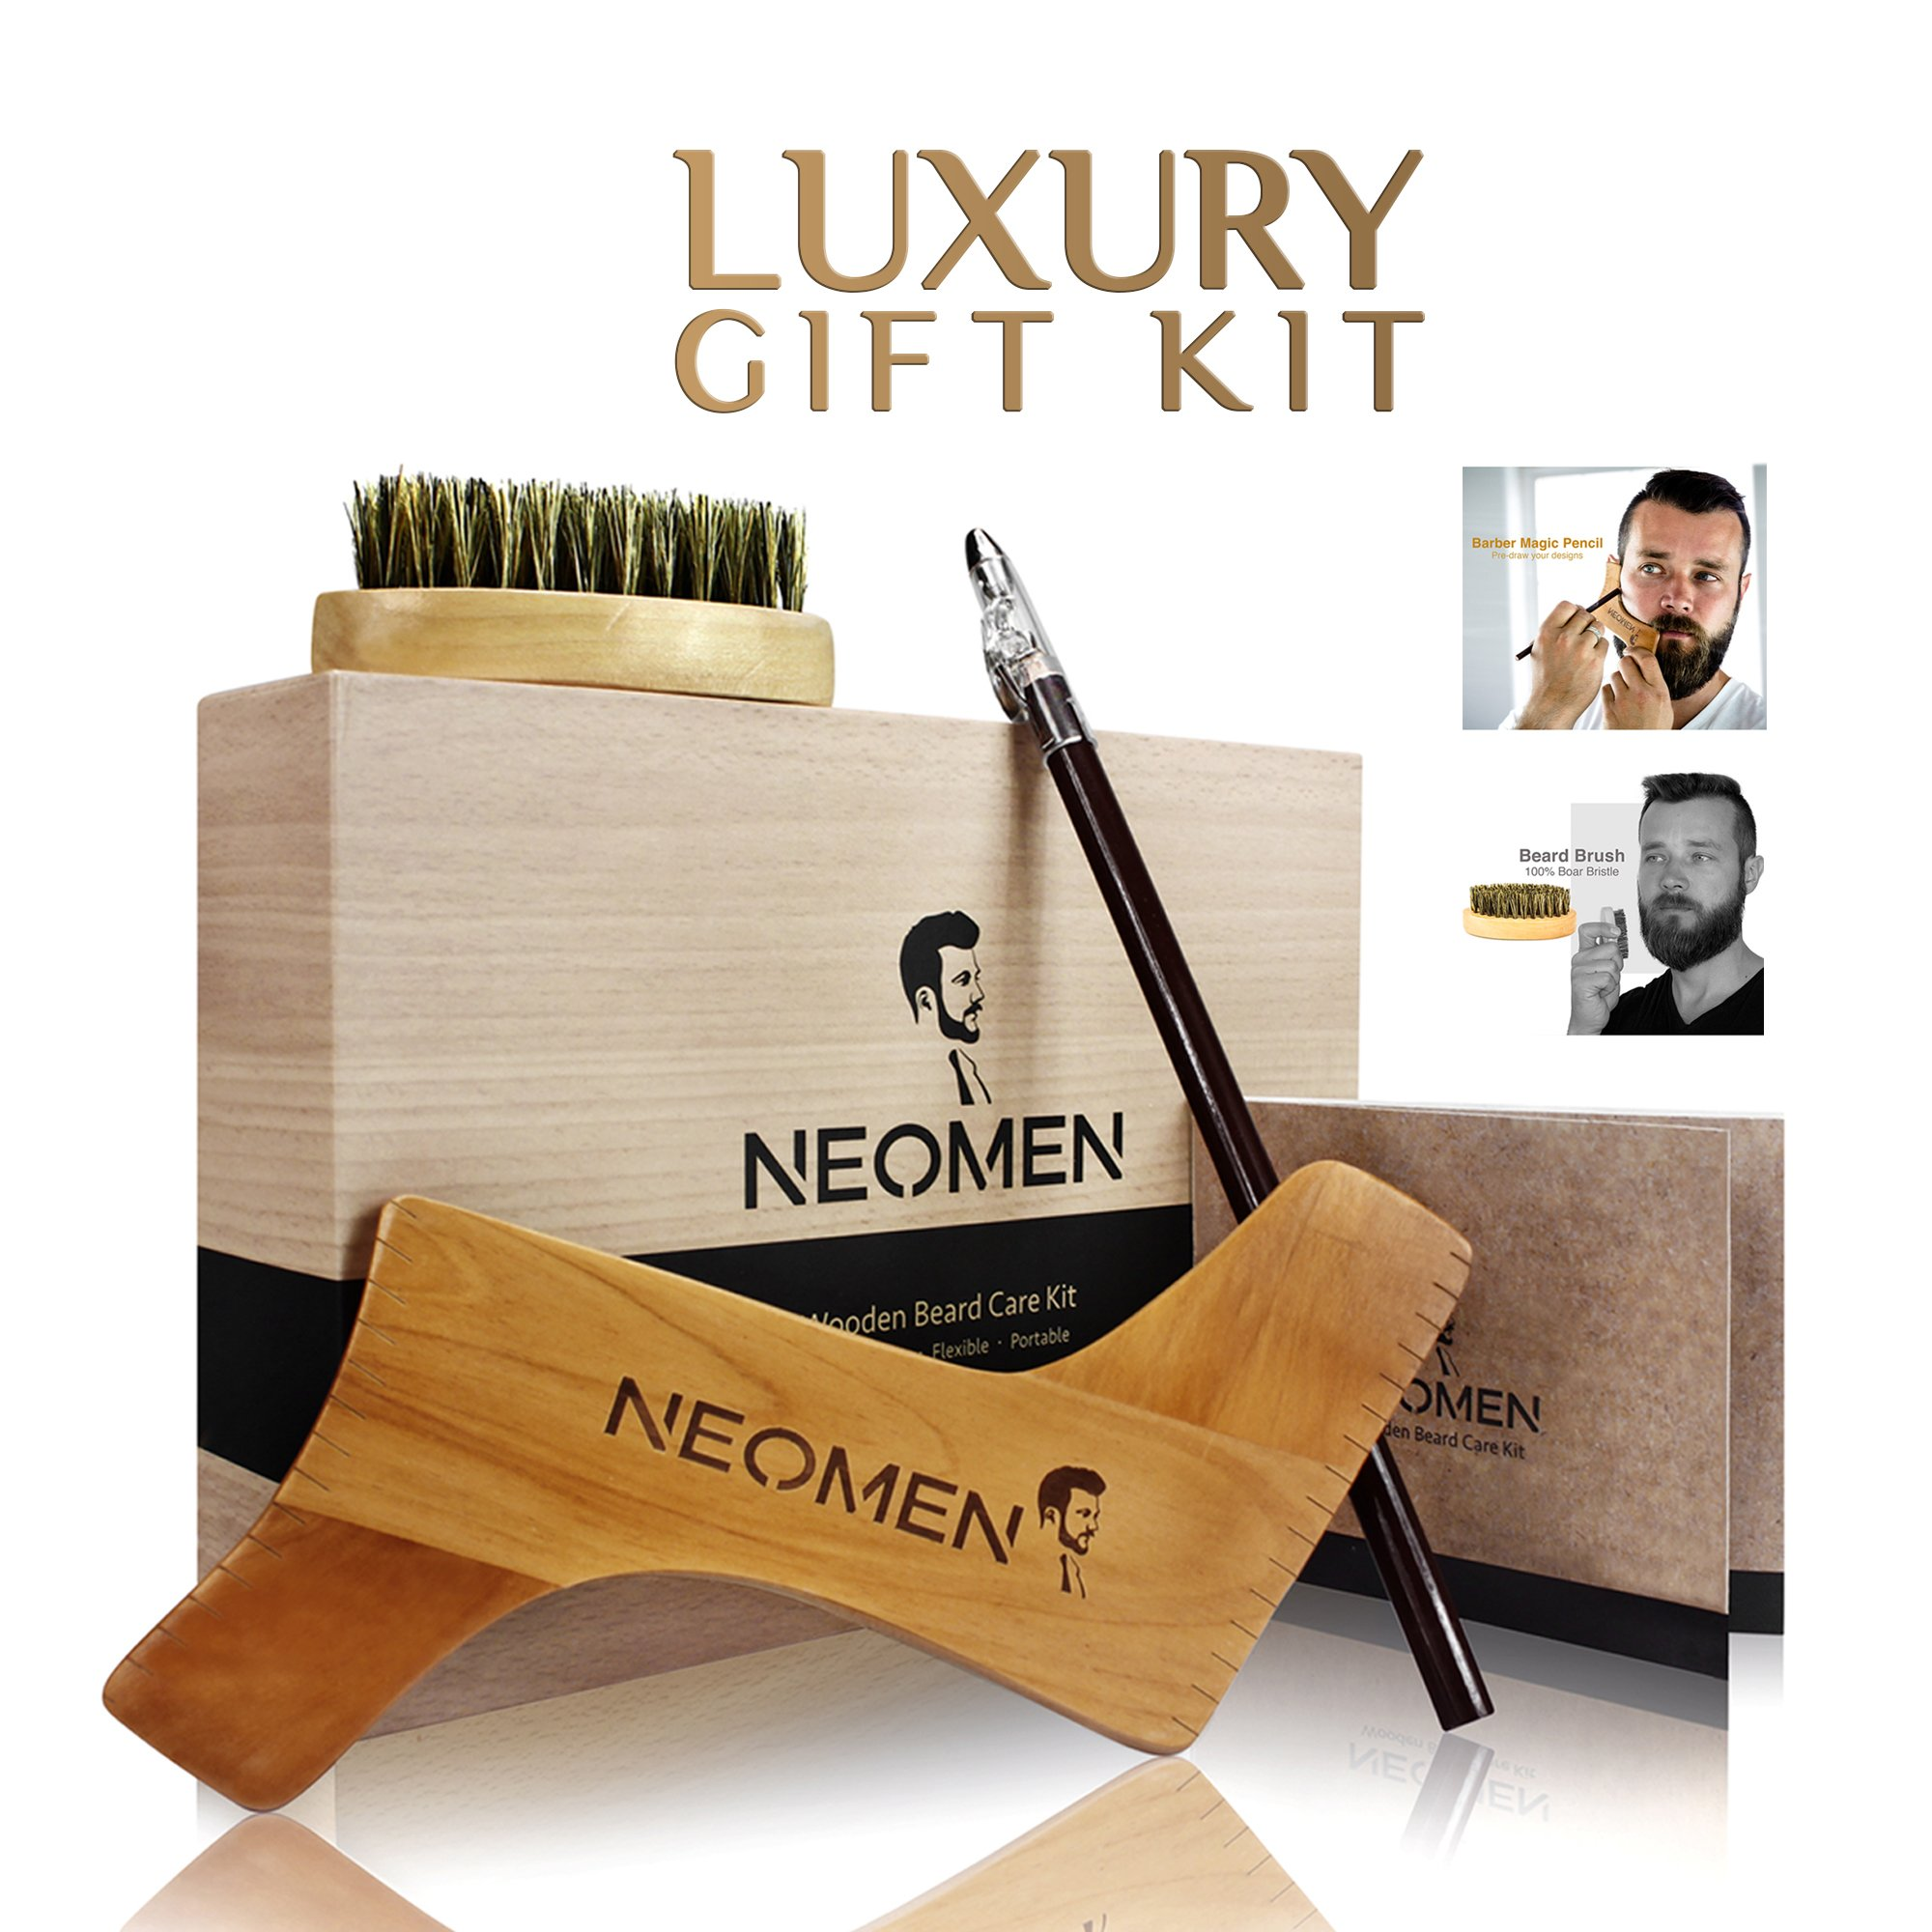 NEOMEN Wooden Beard Grooming Kit, Beard Shaping Template Designed for Various Beard Styles, With Boar Bristle Beard Brush & Barber Pencil, Helps to Achieve Perfect Goatee, Mustache & Neck Line by NEOMEN